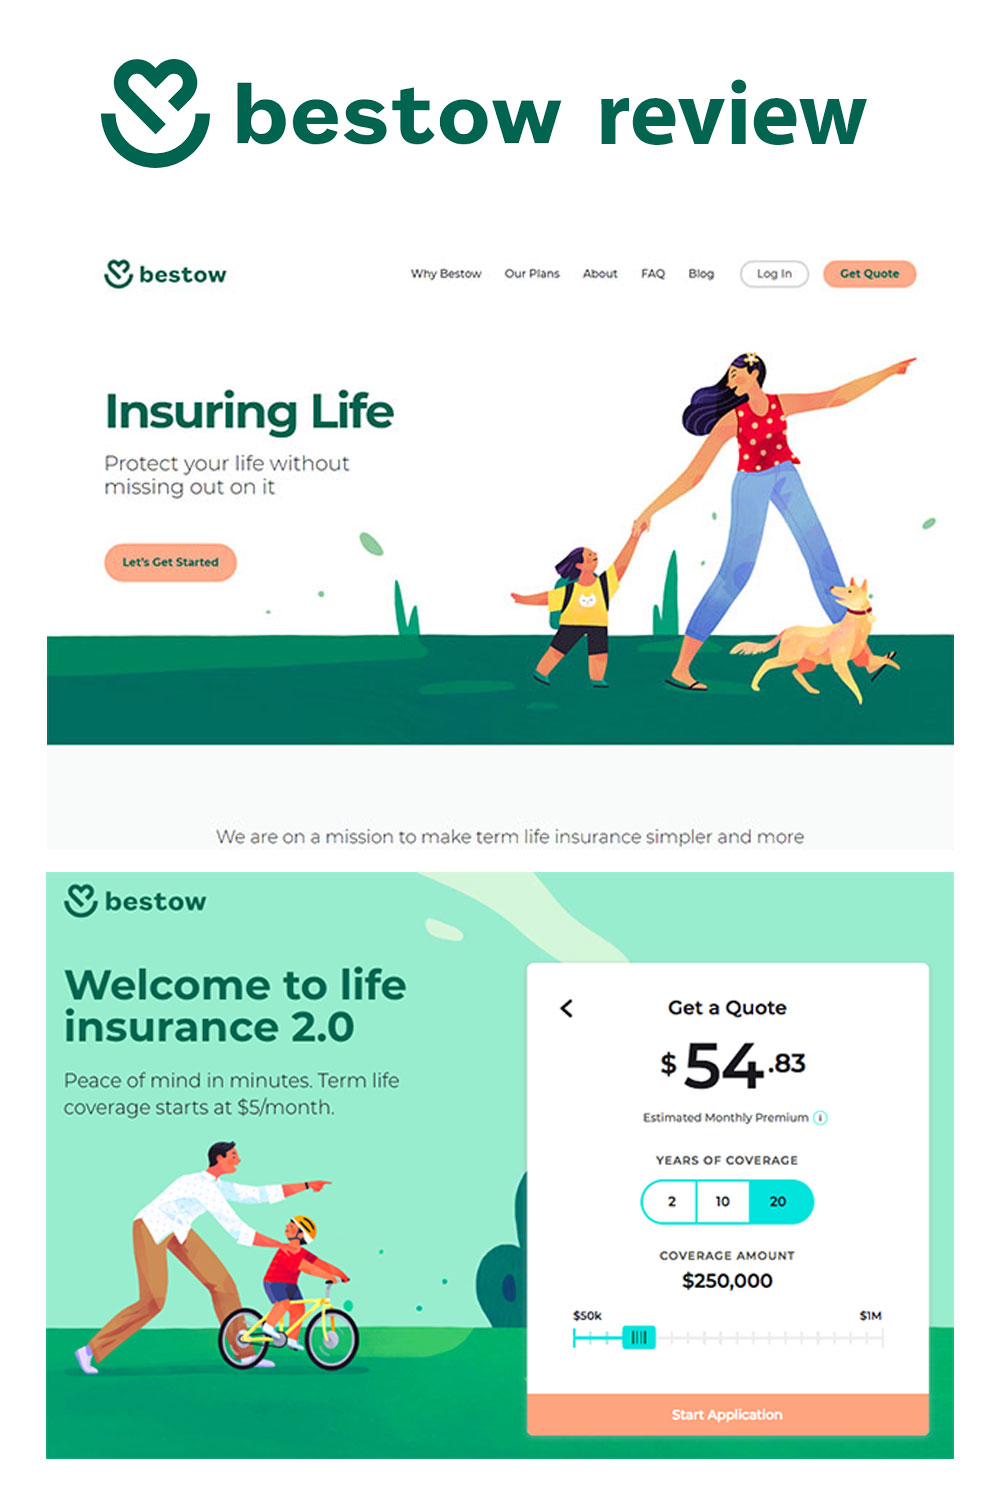 Bestow is making the process of getting life insurance easier, less intimidating and keeping the costs affordable. Get term life with no medical exam!